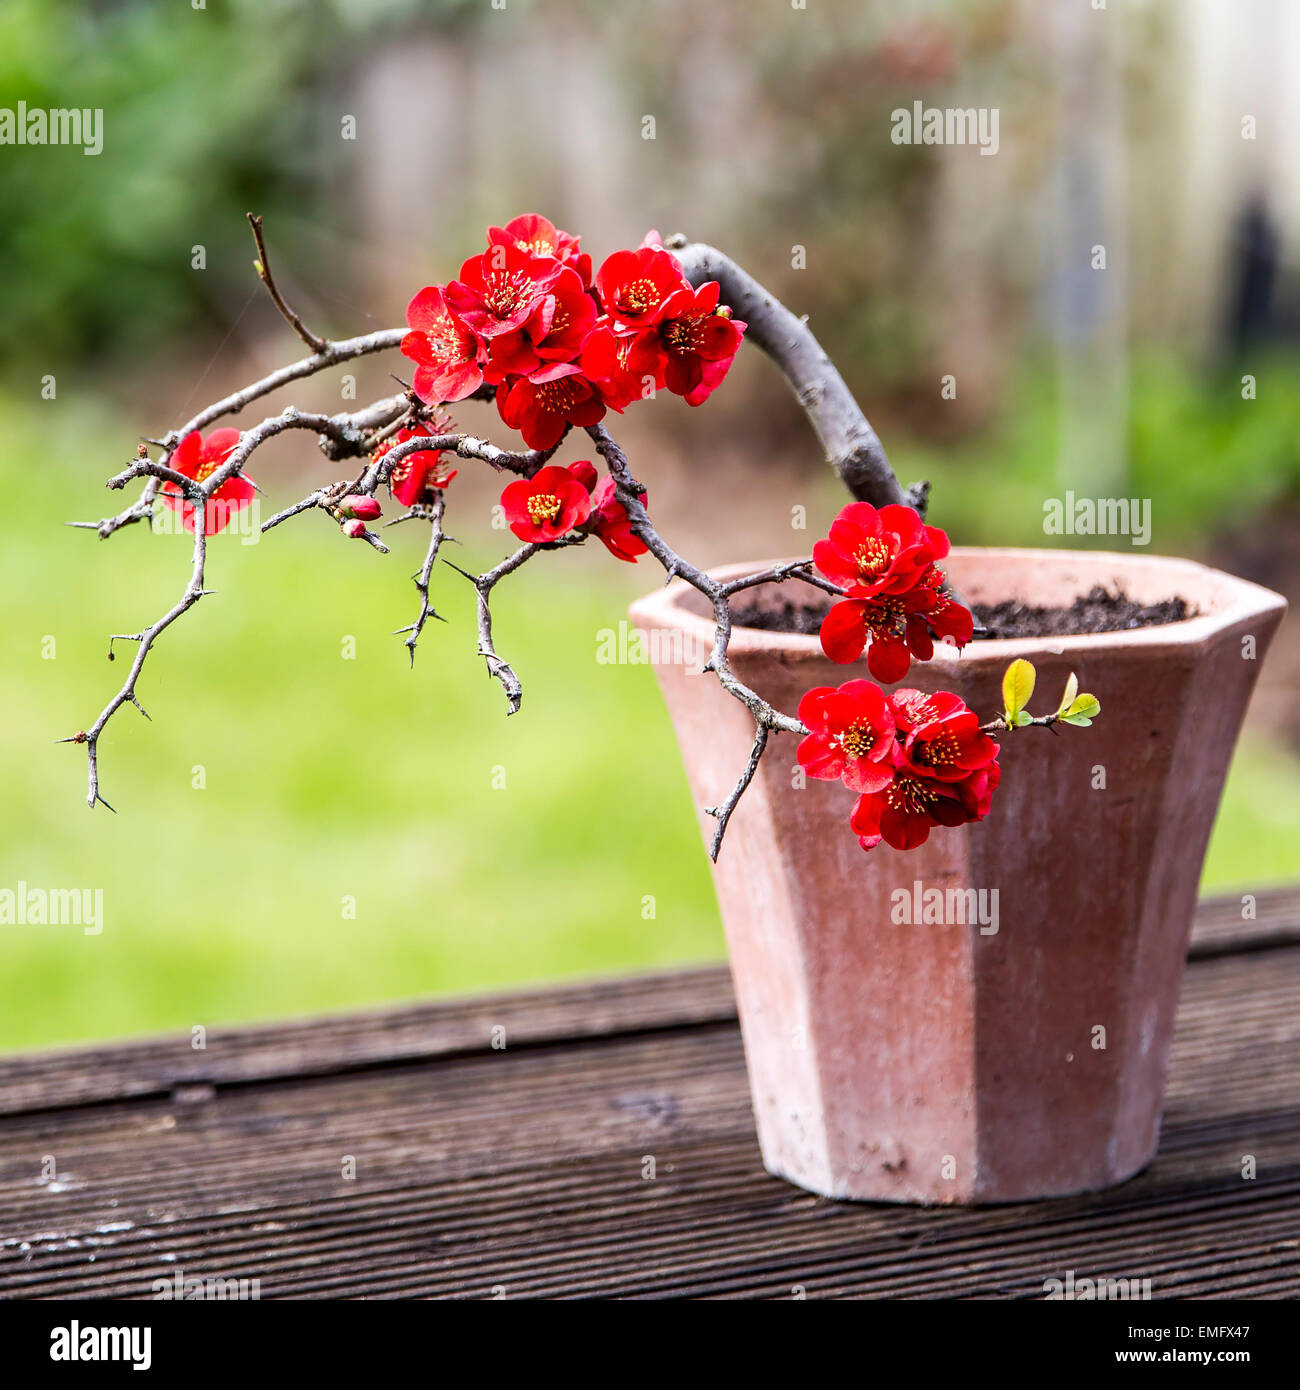 Flowering Quince Bonsai Tree Scientific Name Chaenomeles Speciosa Stock Photo Alamy